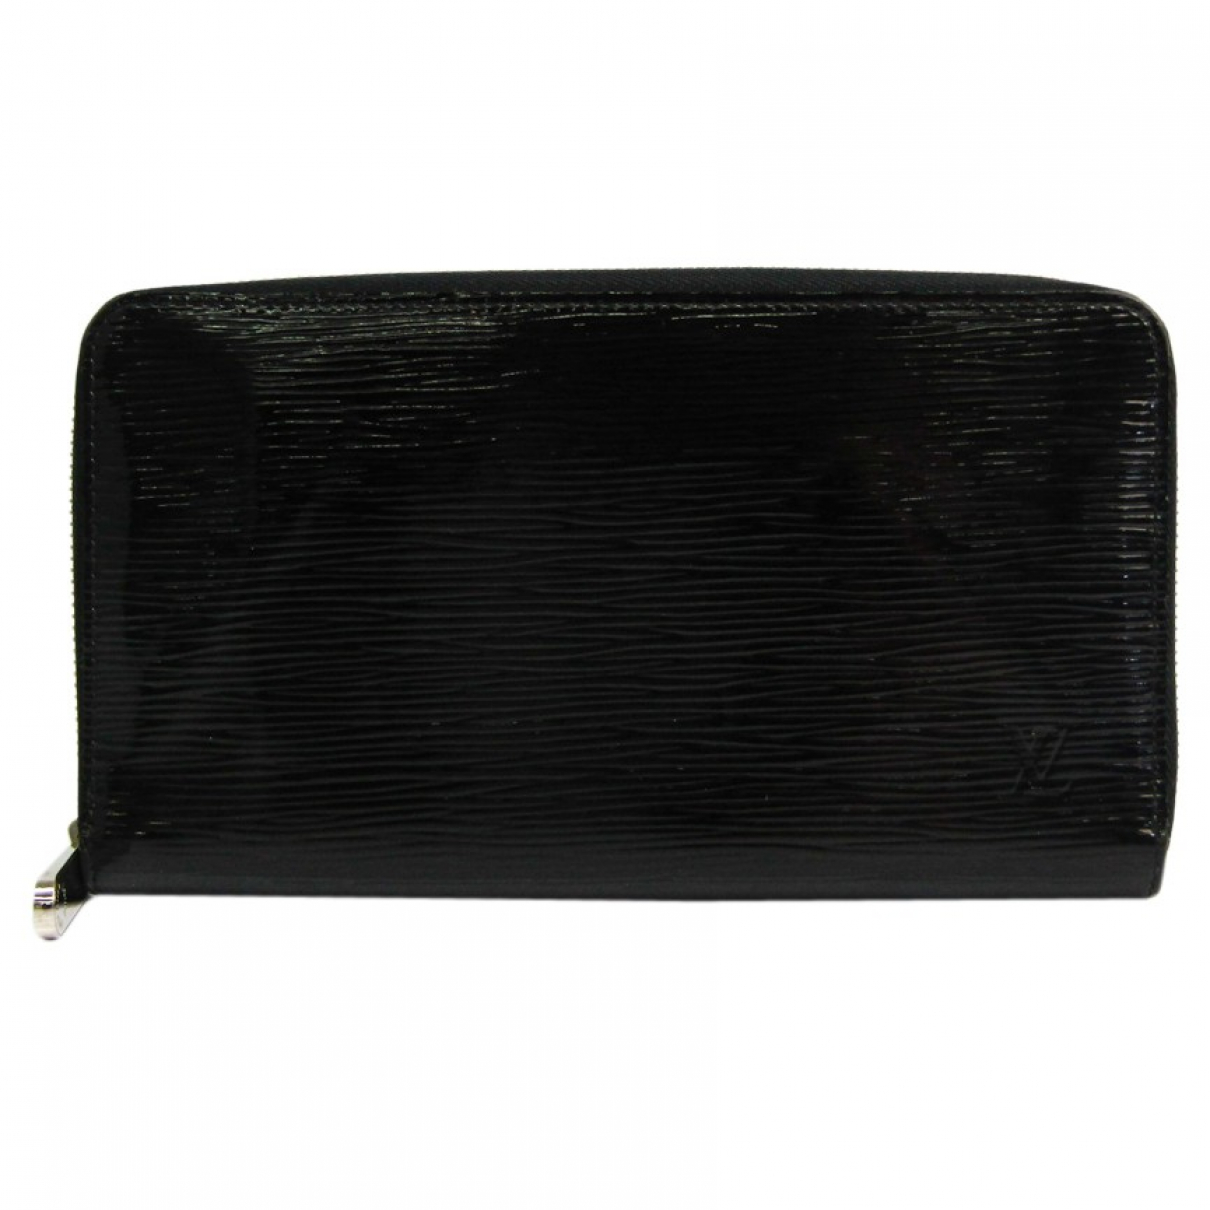 Louis Vuitton N Black Patent leather wallet for Women N